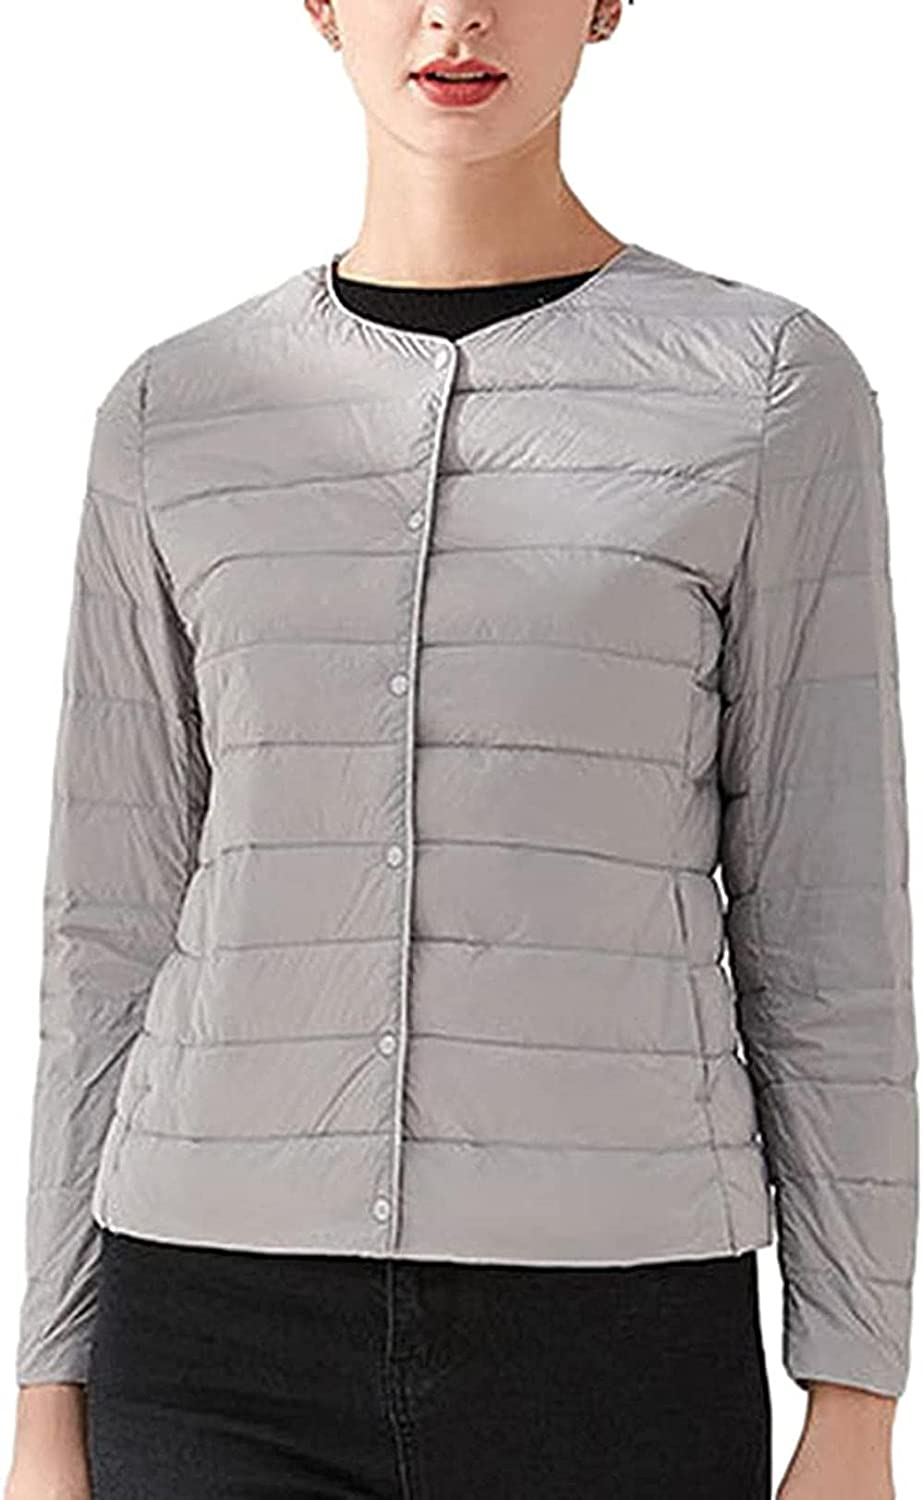 Women's Quilted Lightweight Jackets Thermal Packable Button Puffer Coat